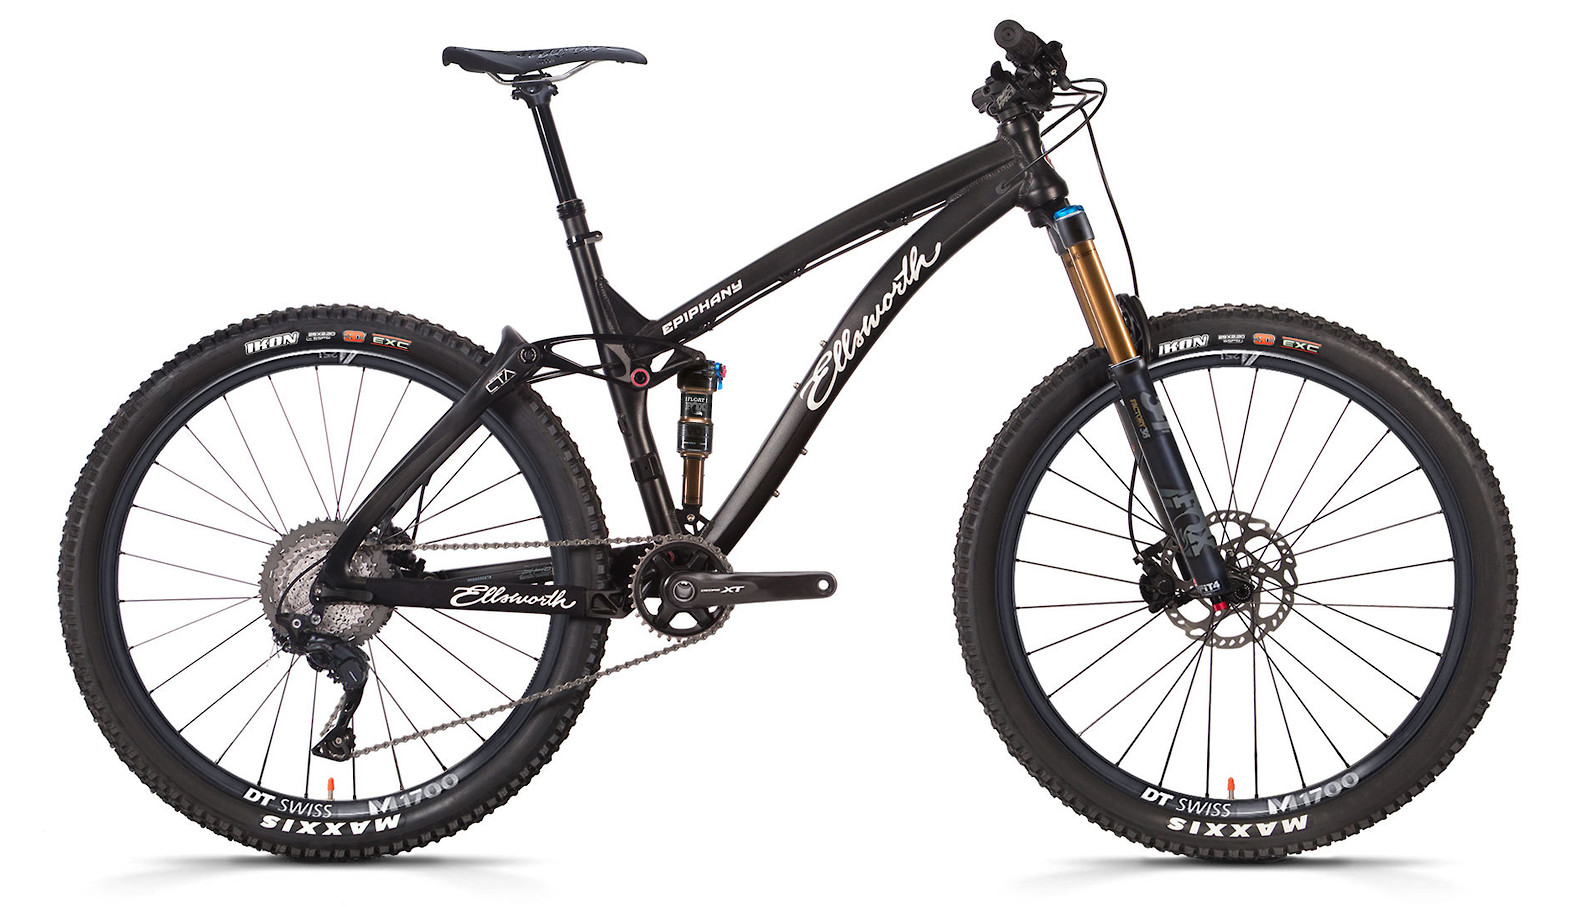 "2019 Ellsworth Epiphany Alloy Convert (Black; 29"" XT build shown)"